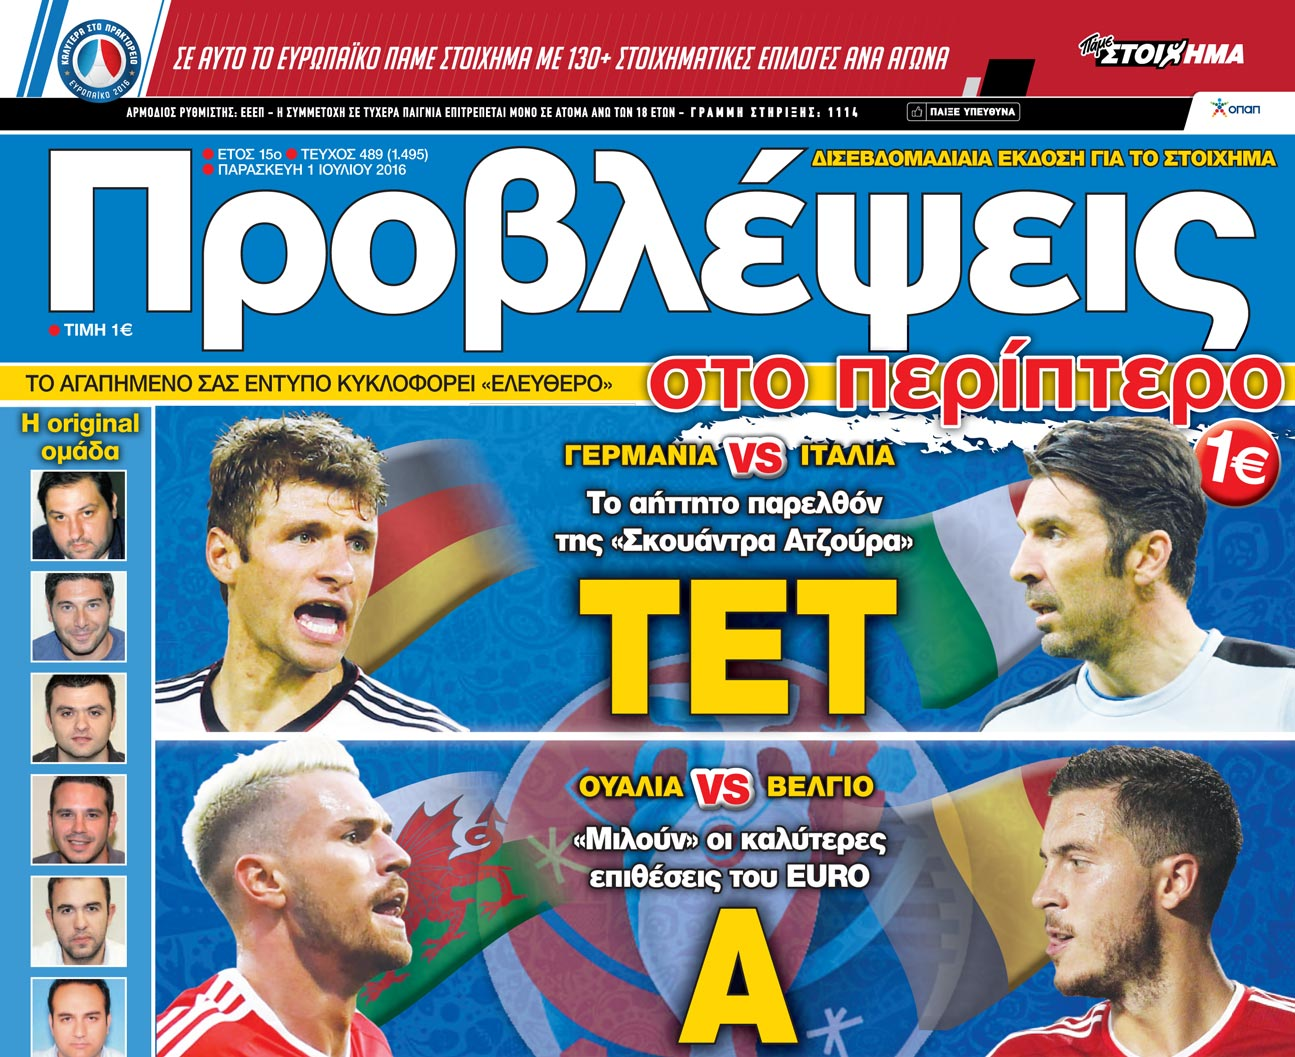 COVER-1 (10)